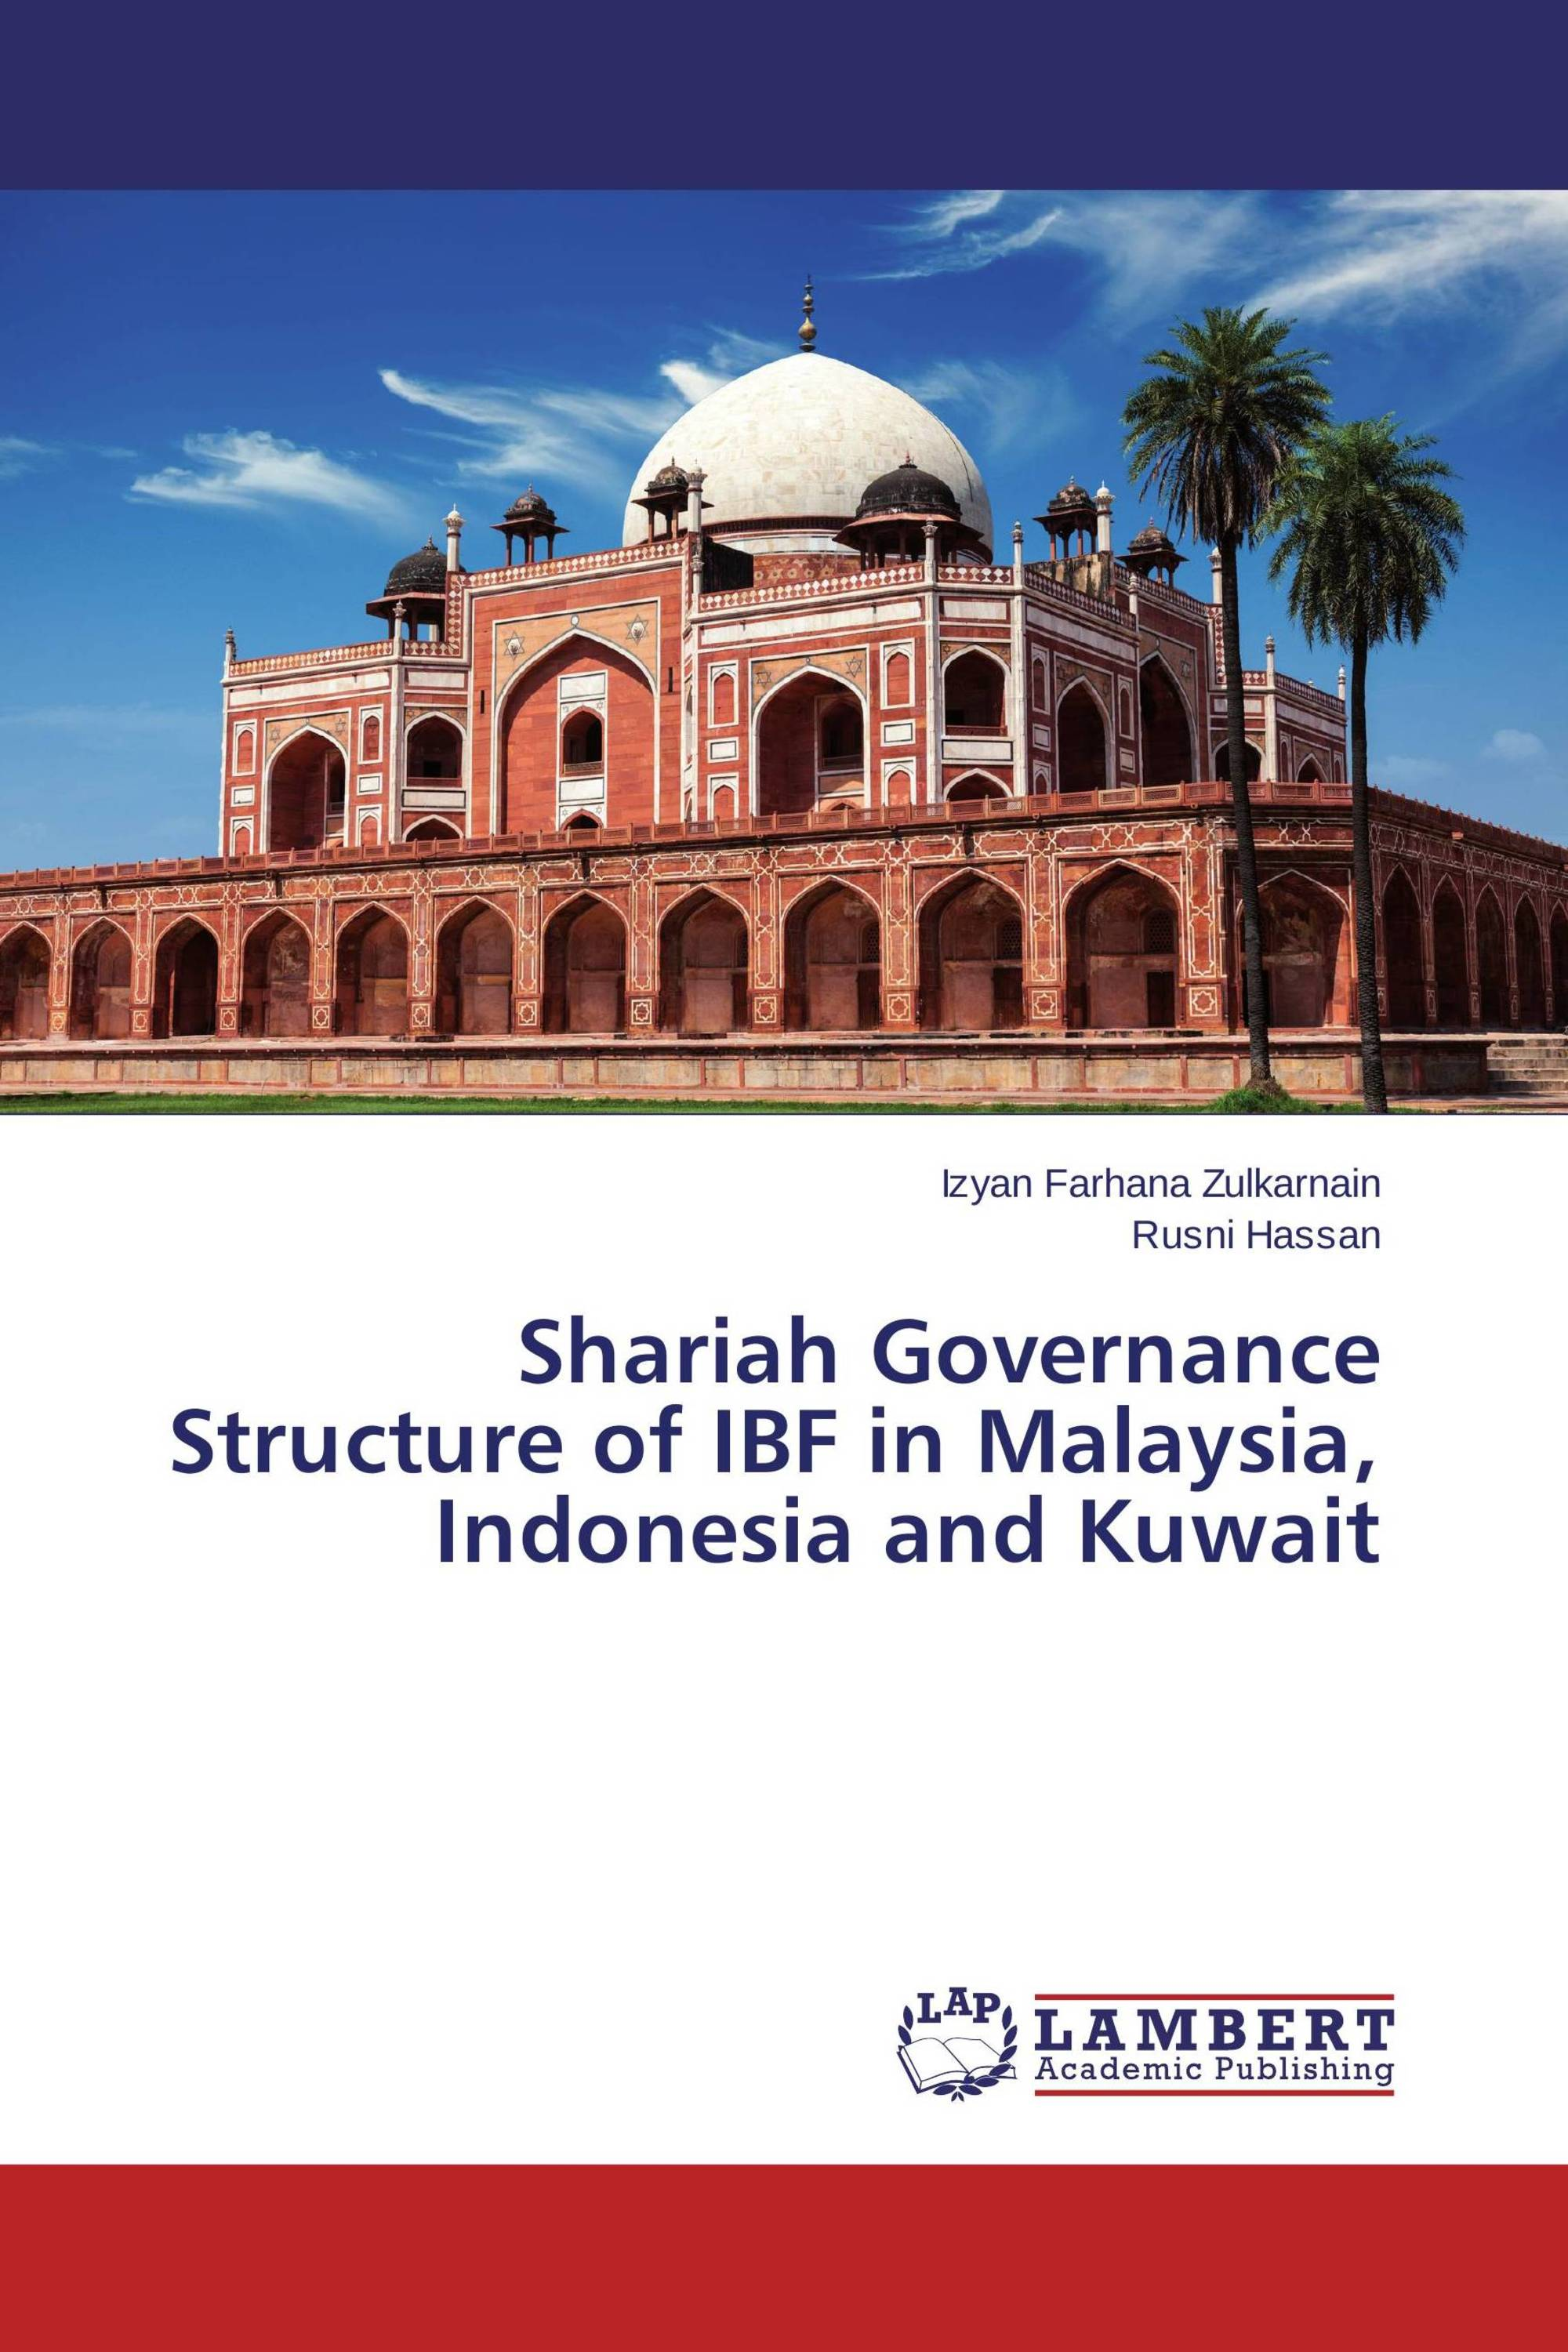 Shariah Governance Structure of IBF in Malaysia, Indonesia and Kuwait